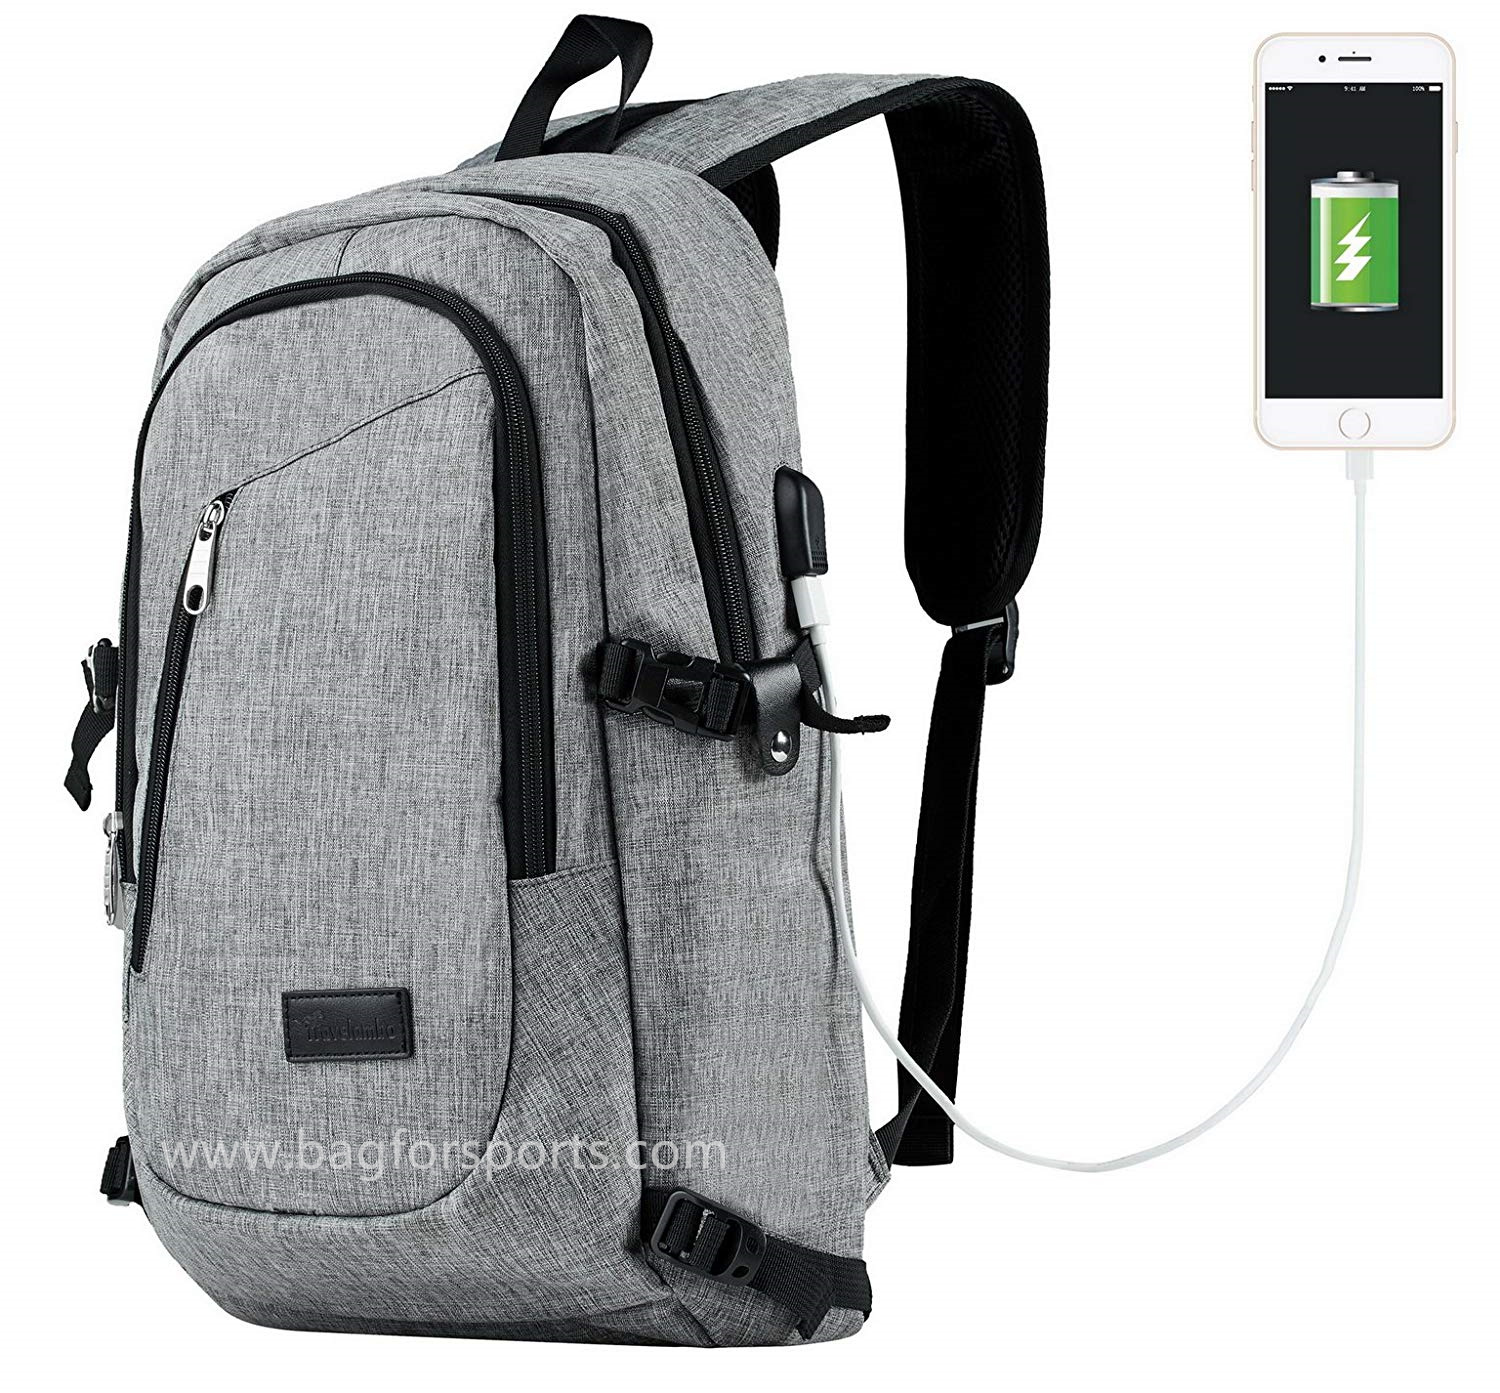 Travelambo Business Water Resistant Polyester Laptop Backpack Travel Bag with USB Charging Port and